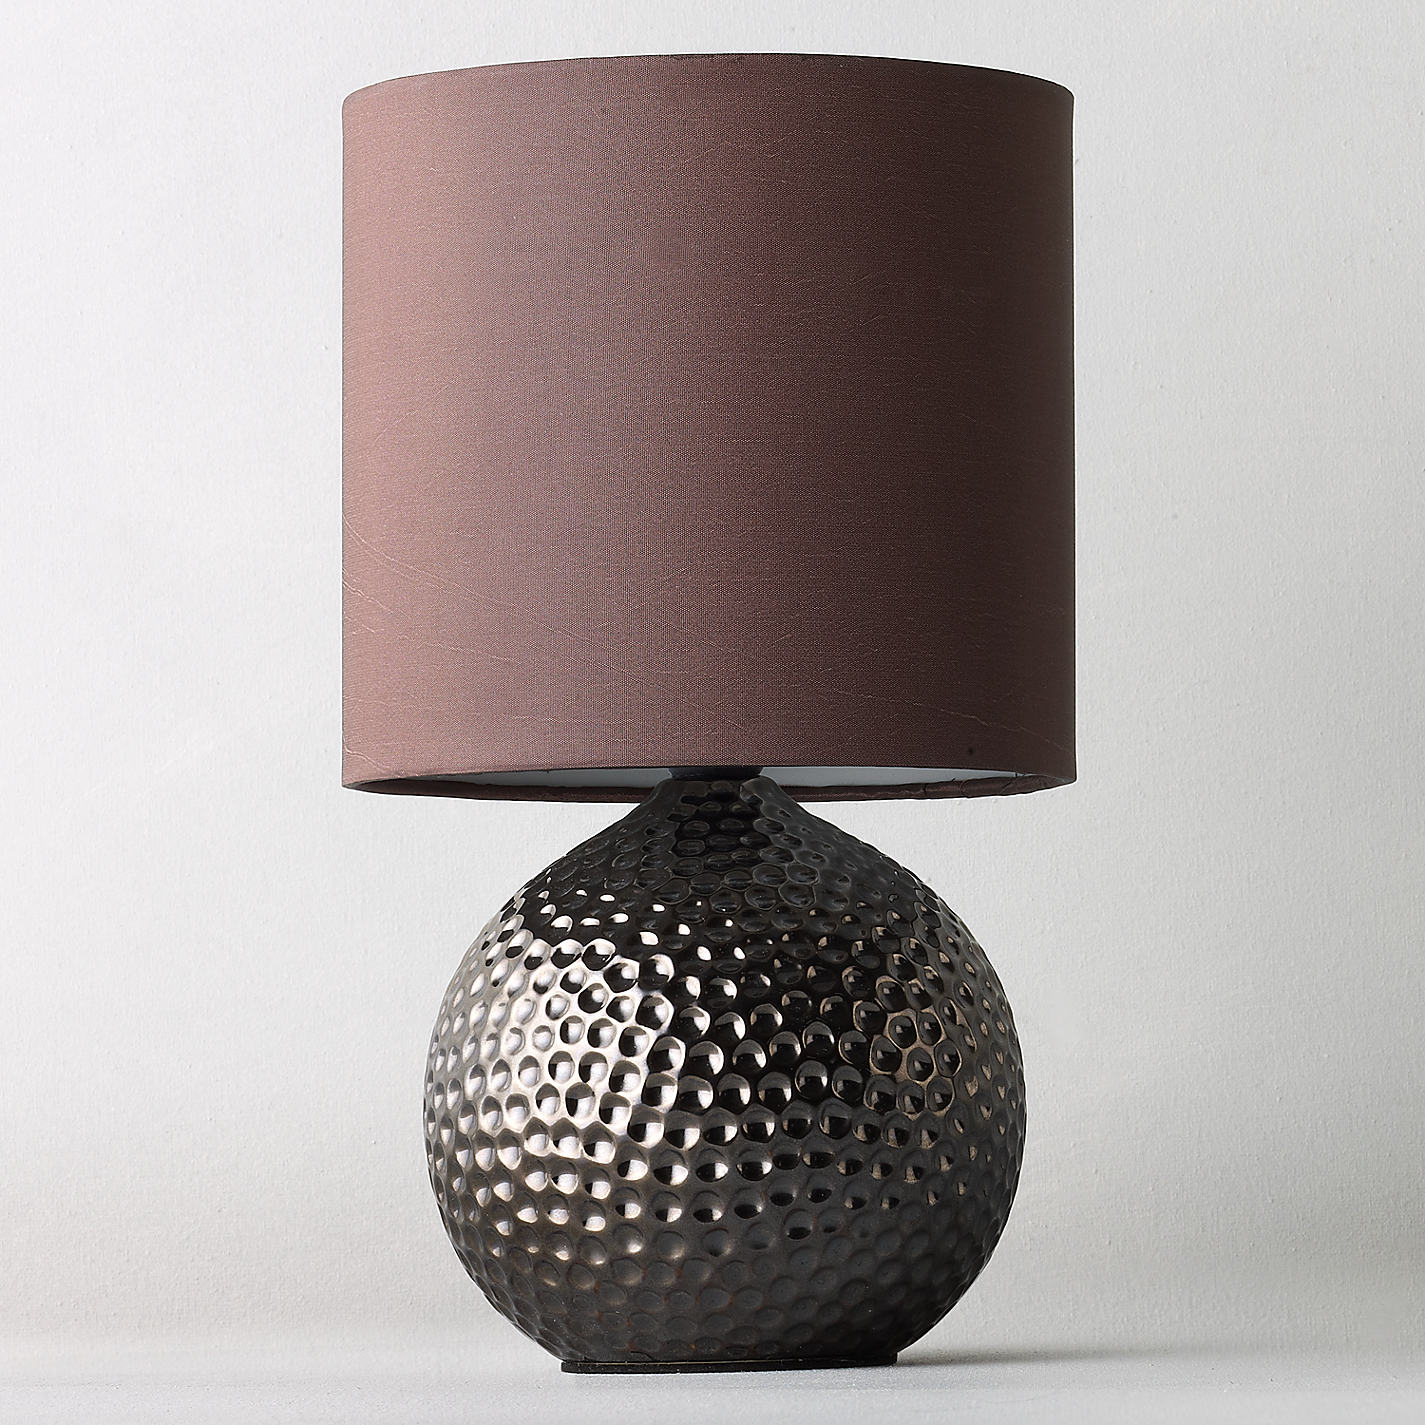 Buy john lewis alisa table lamp bronze john lewis buy john lewis alisa table lamp bronze online at johnlewis aloadofball Images